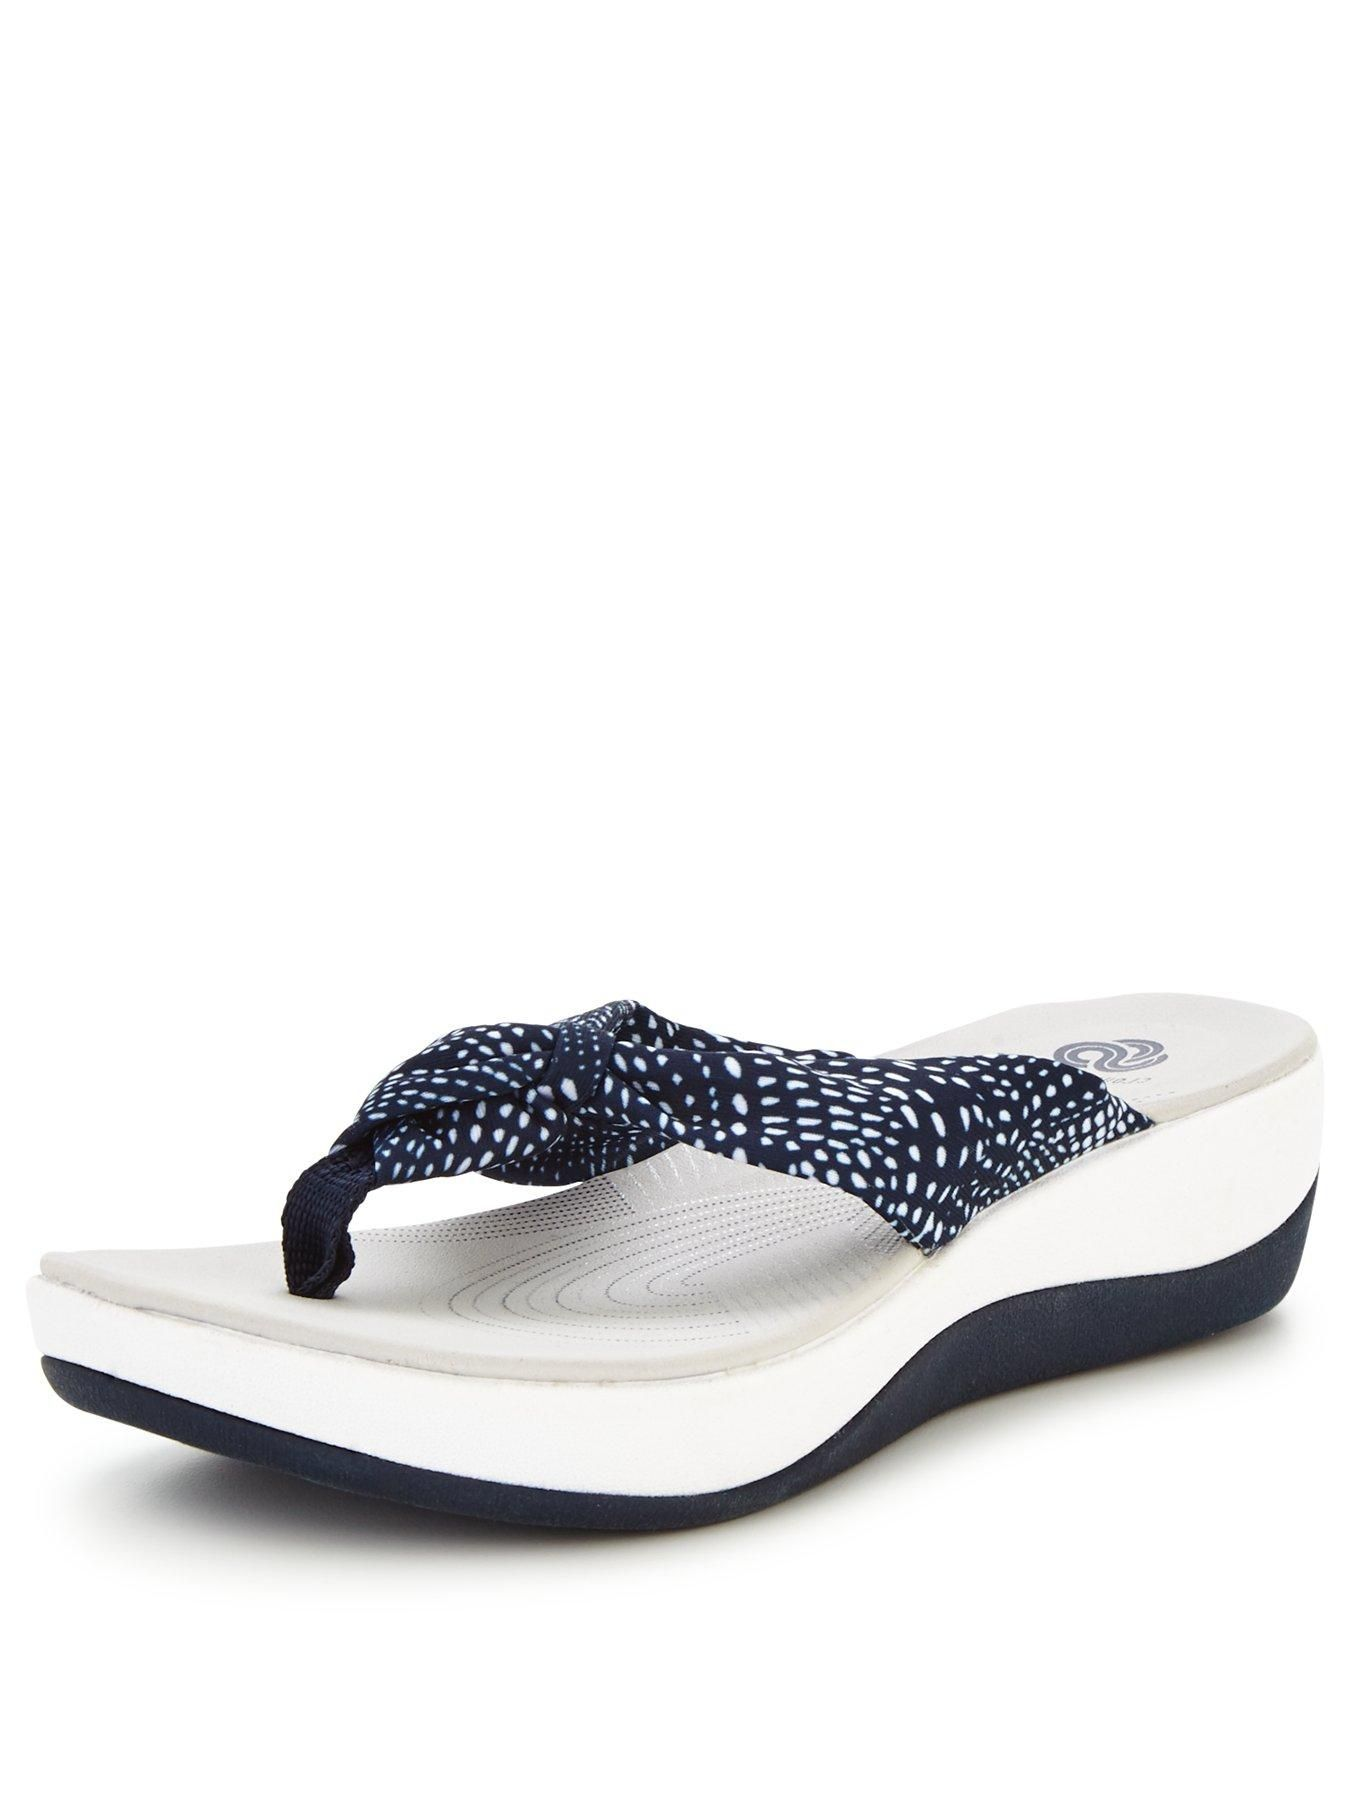 promo code d95c6 2604f Lining  Textile OtherSole  Other MaterialsUpper  Textile Clarks, Flip Flops,  Kids